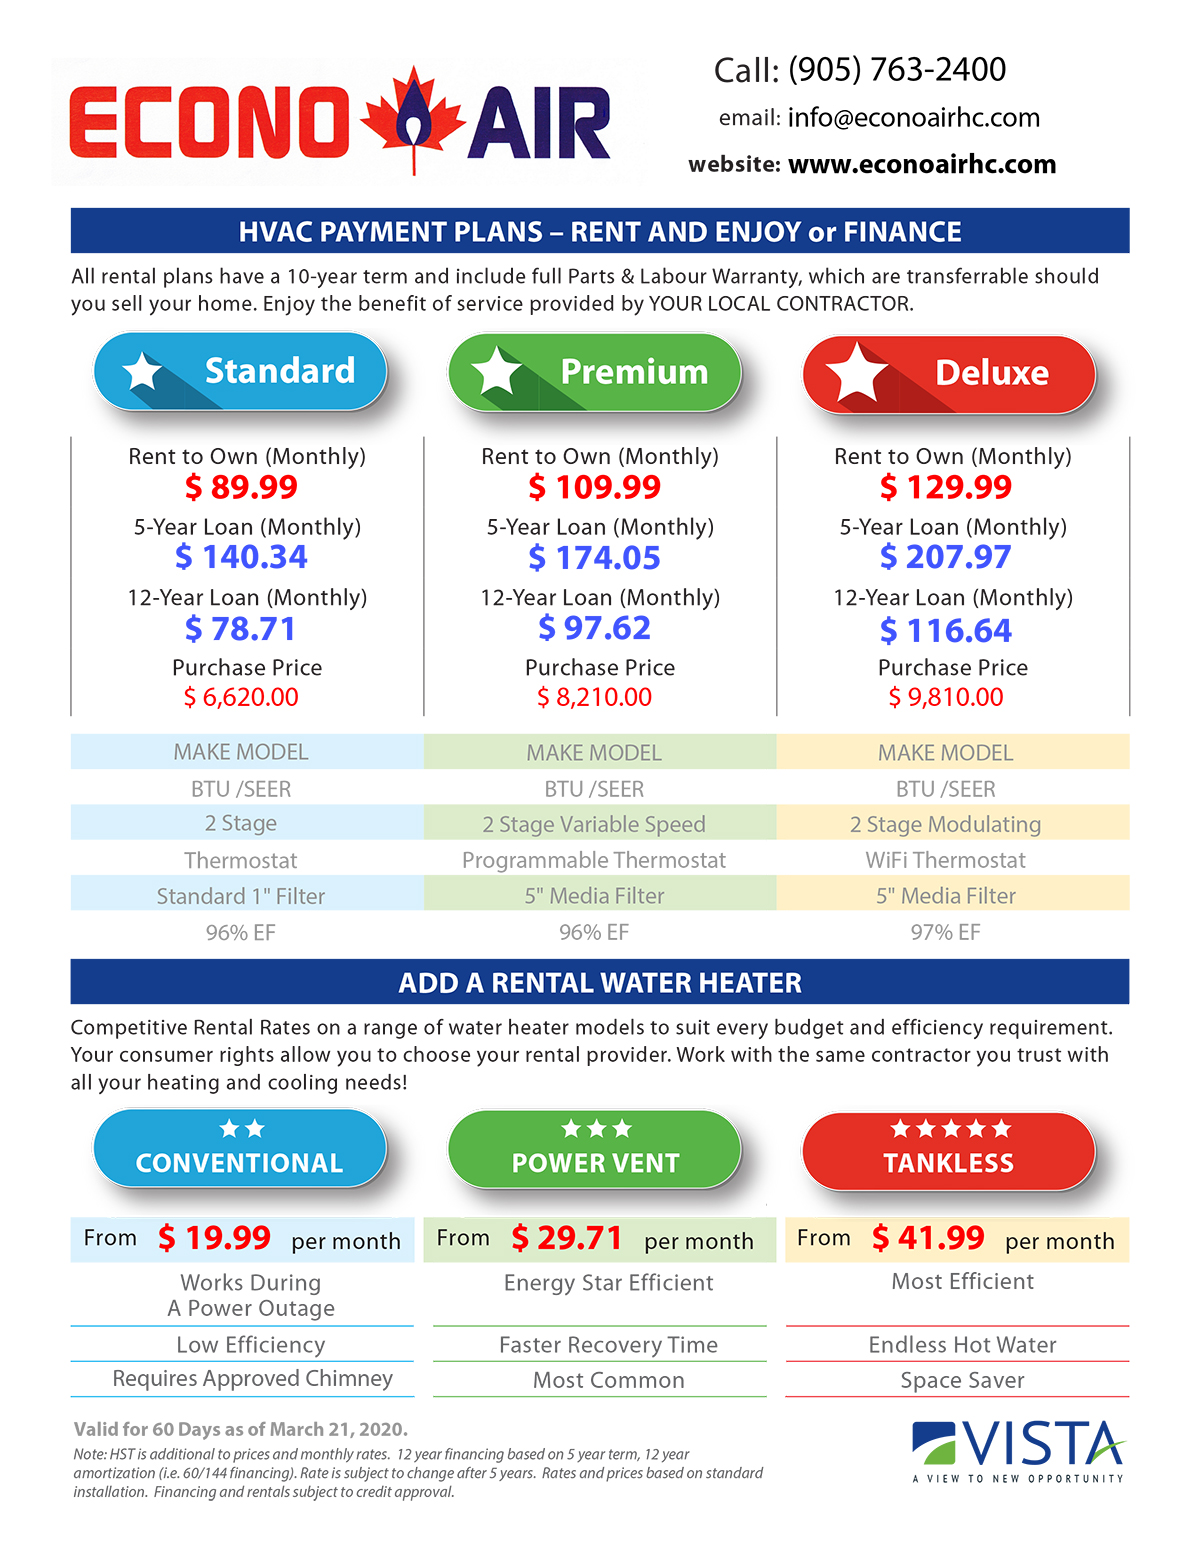 Vista Price Sheet